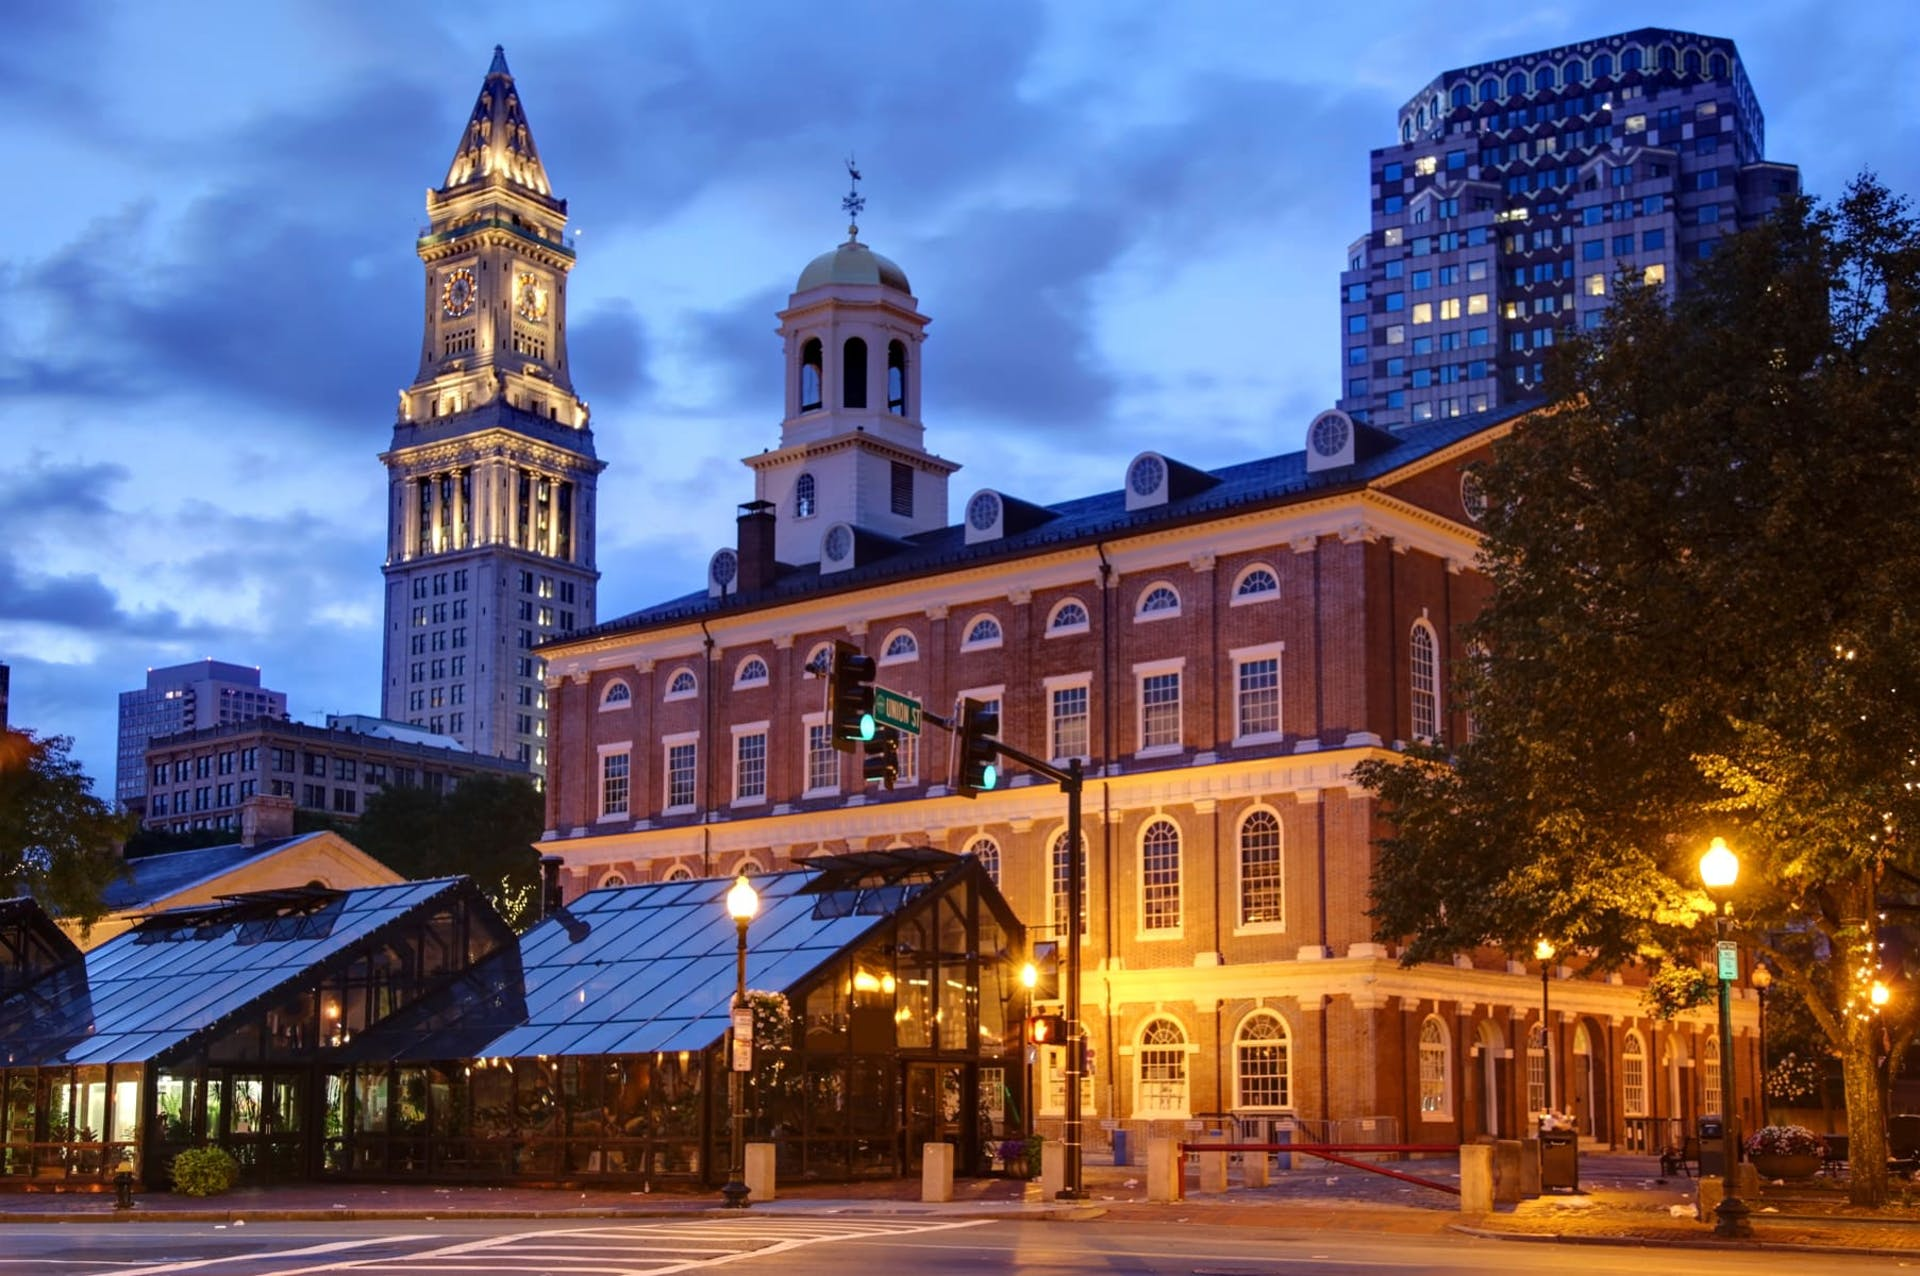 Boston Faneuil Hall exterior at night